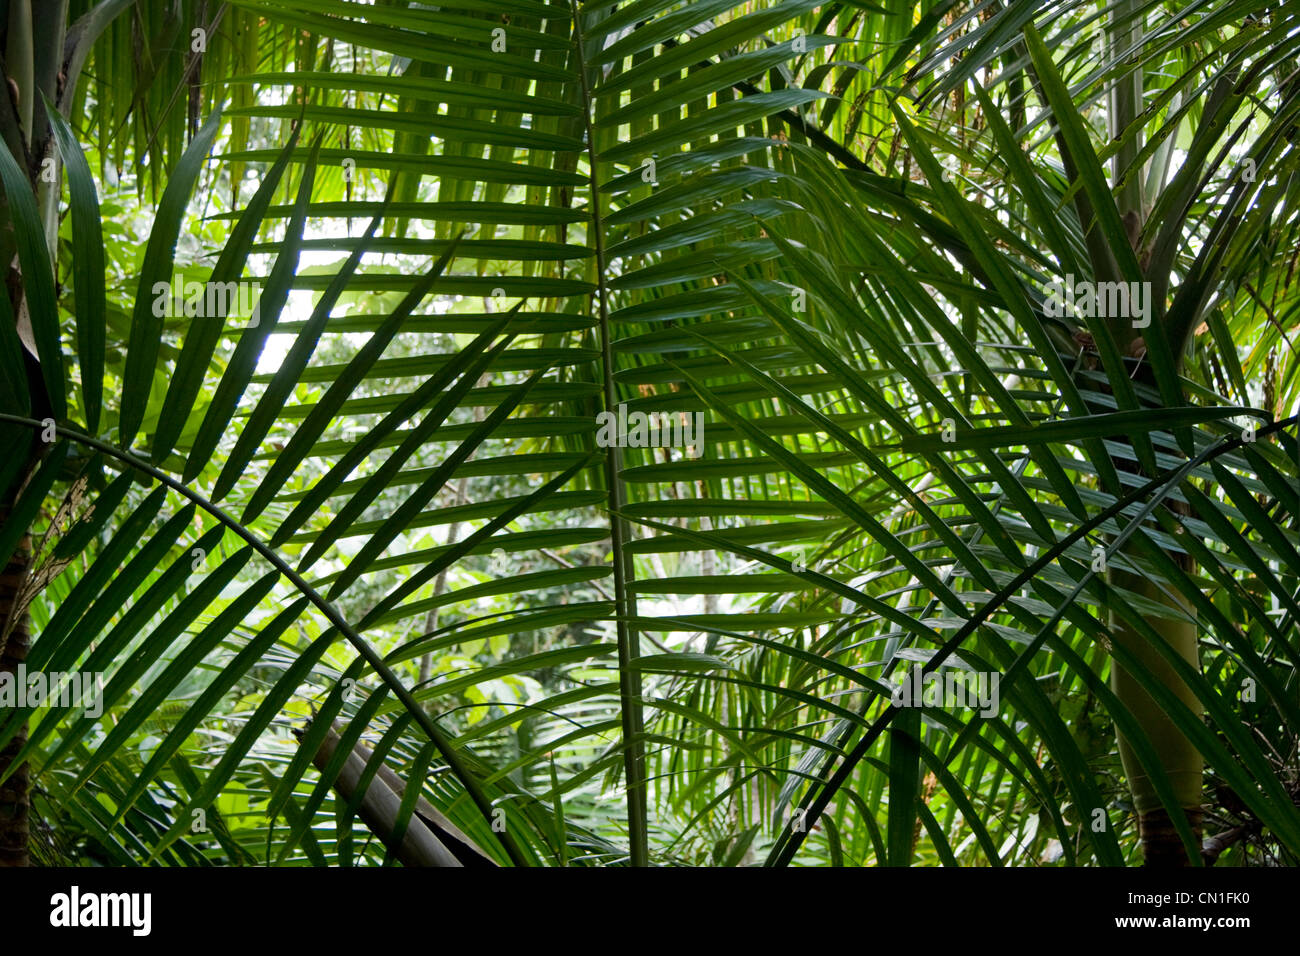 Plant Leaves and Fronds - Stock Image